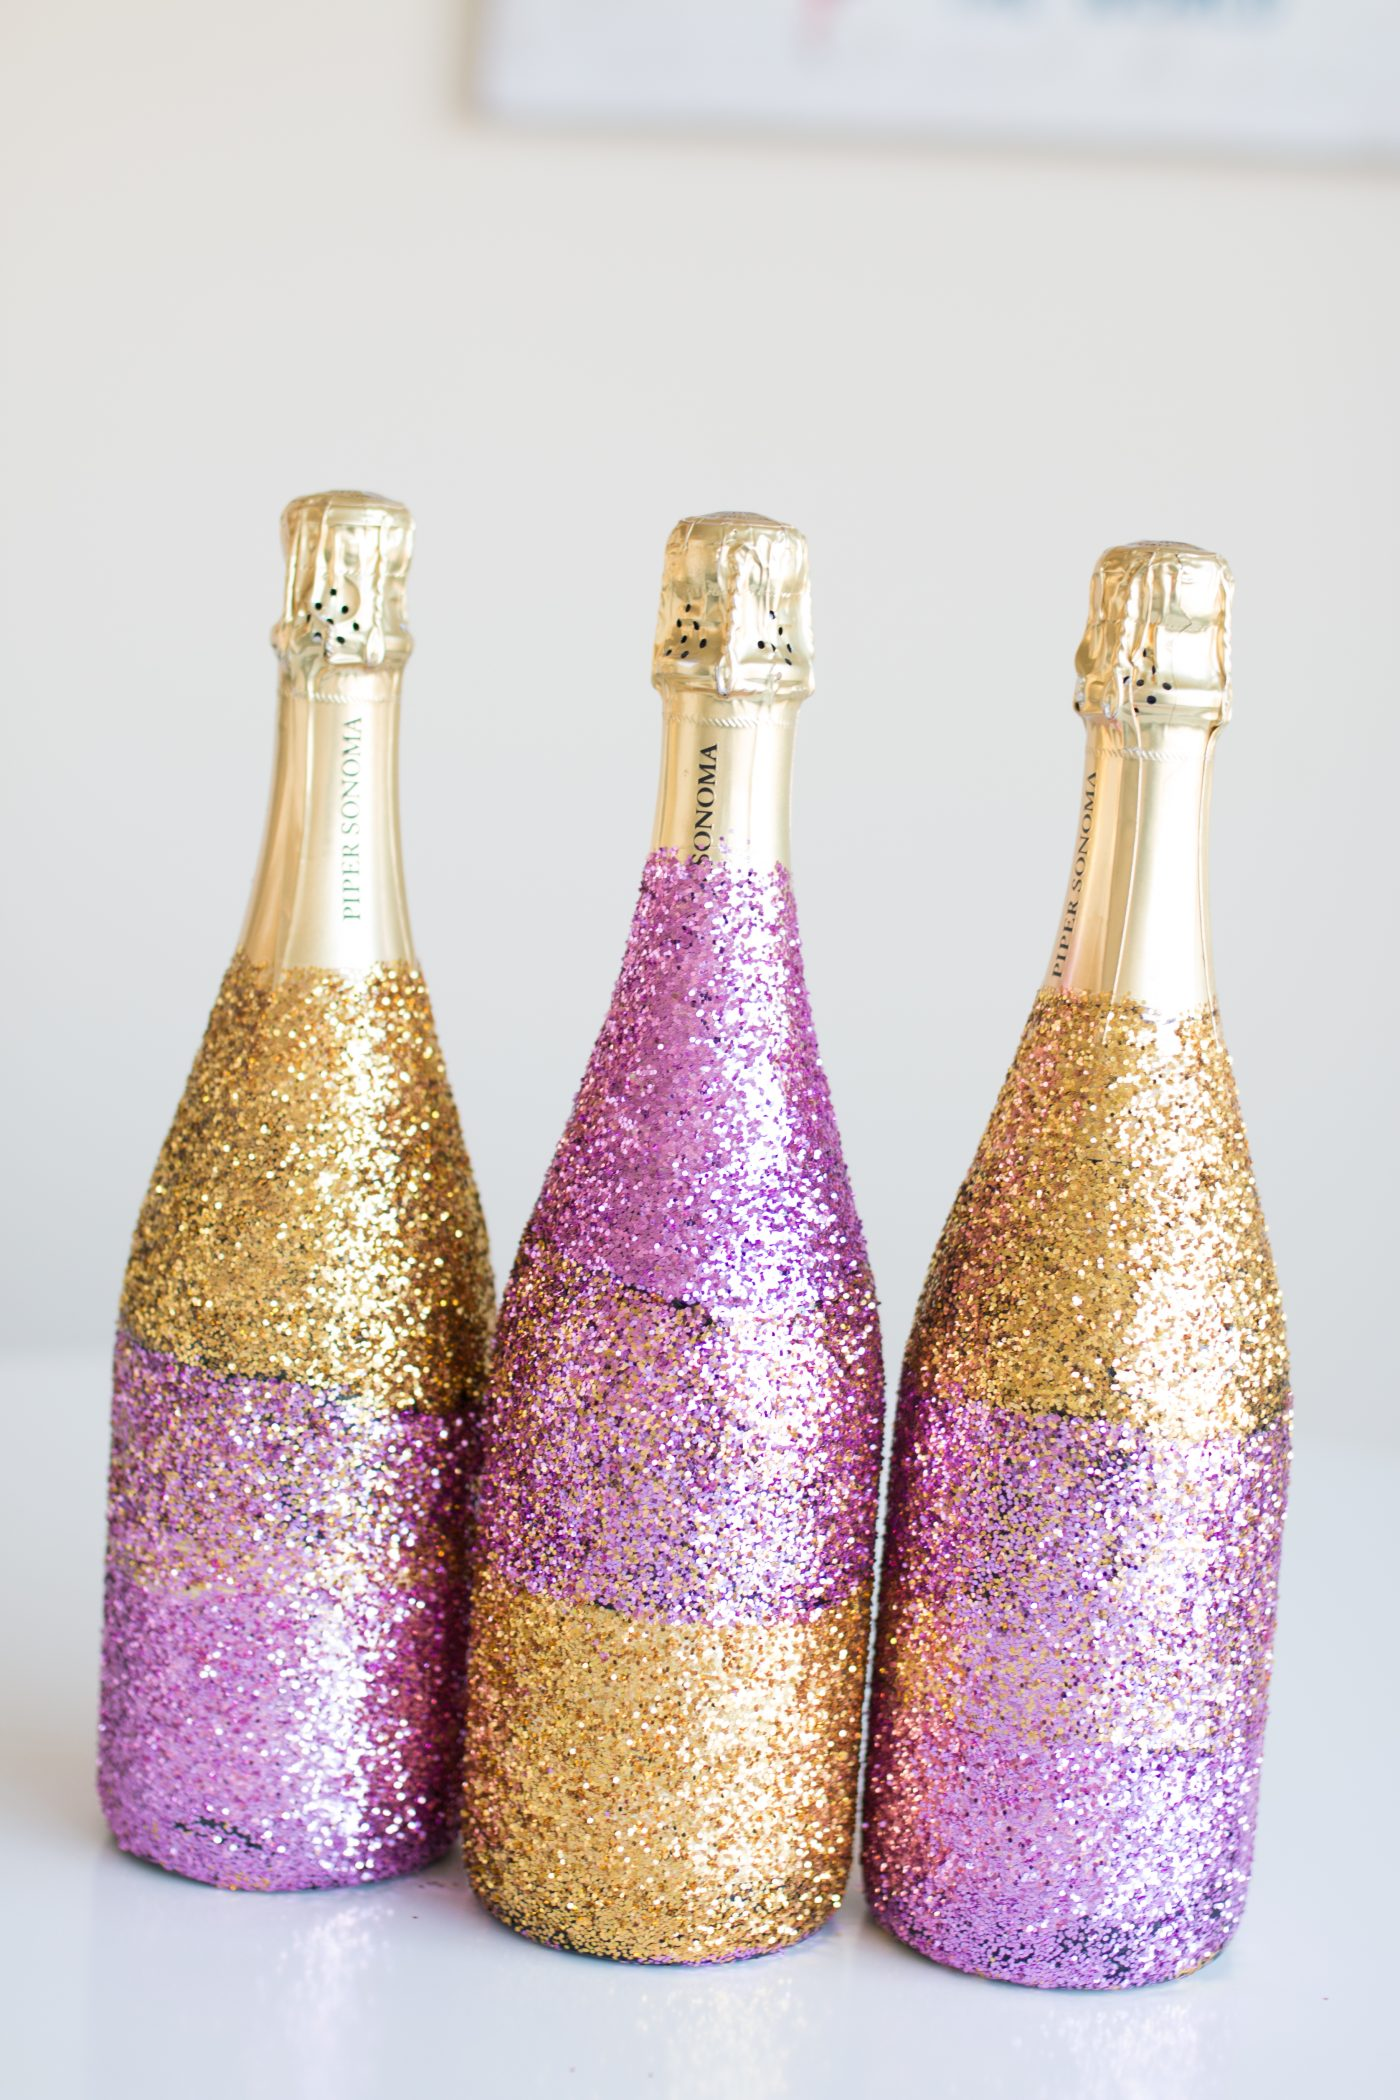 Diy glitter ombr champagne bottle baubles to bubbles for How to glitter wine bottles